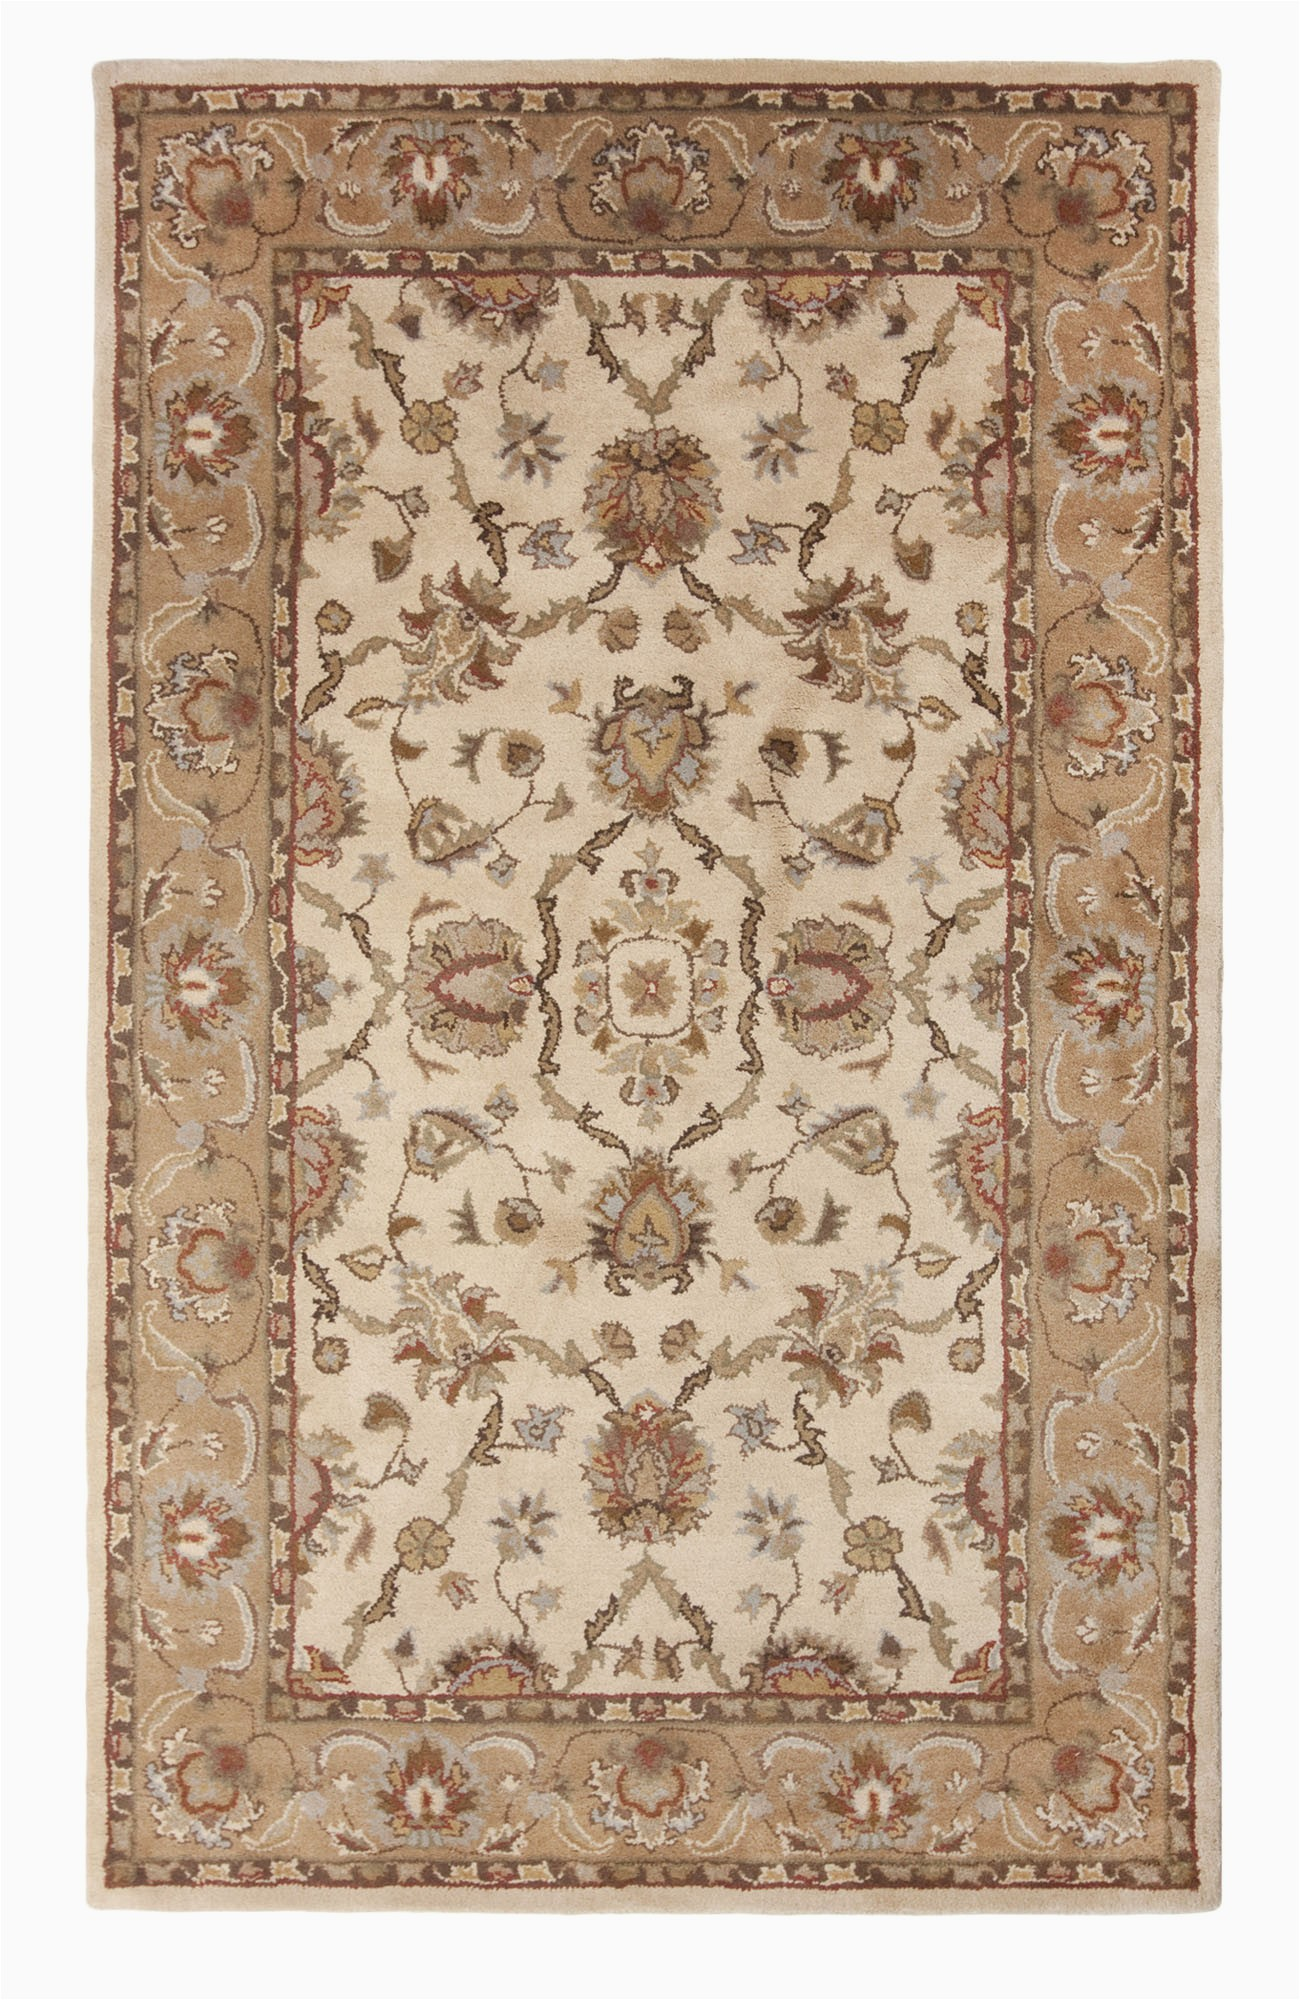 beautiful lowes area rugs 8x10 for floor covering idea